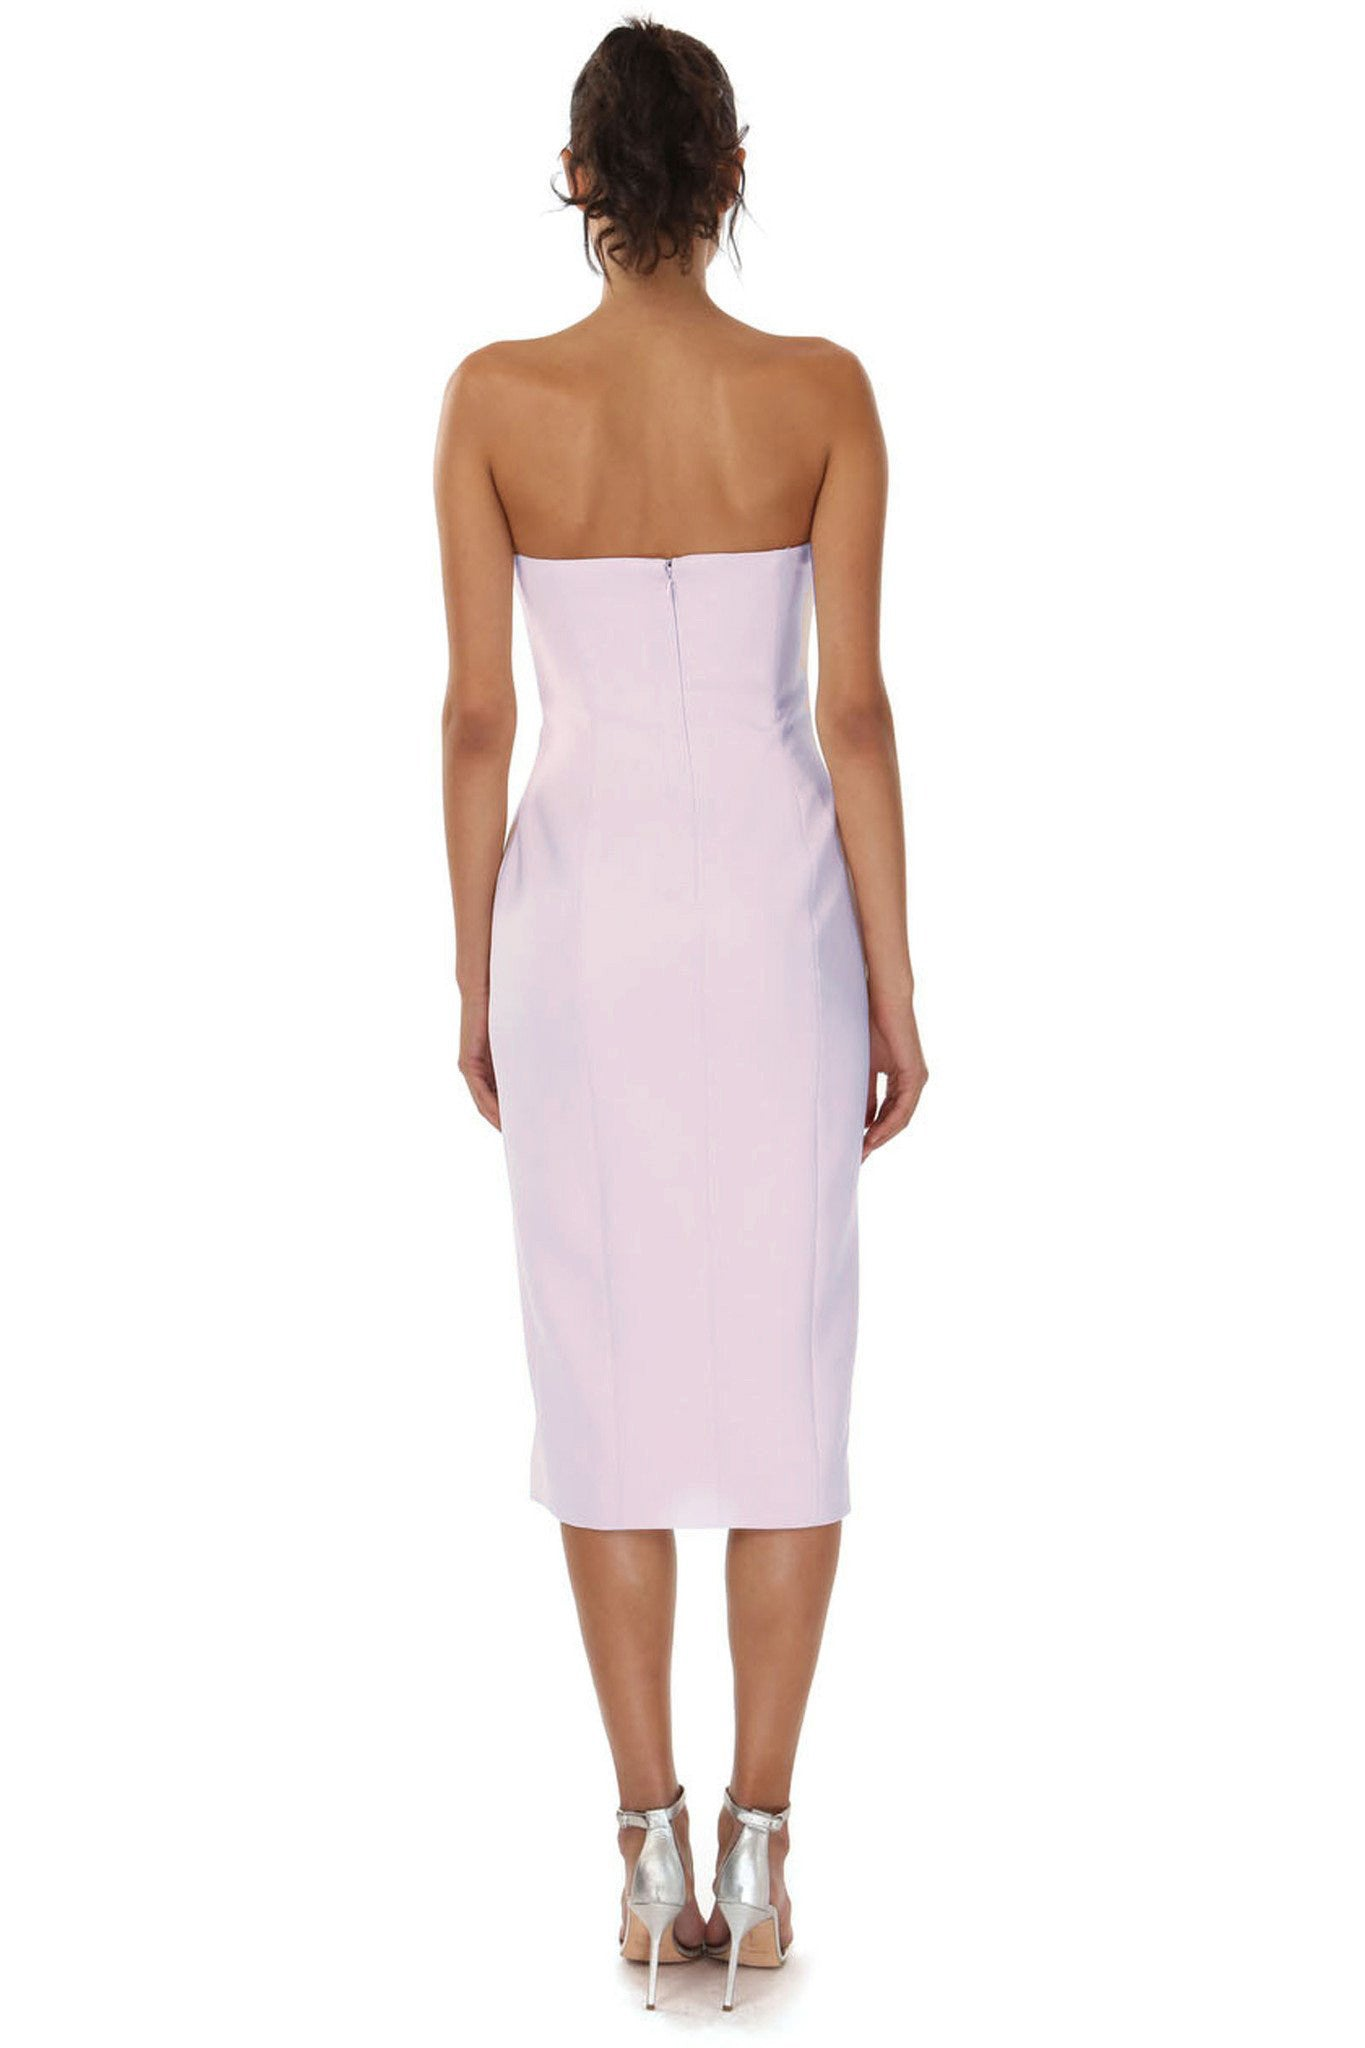 Jay Godfrey Strapless Dress with Slit - Back View